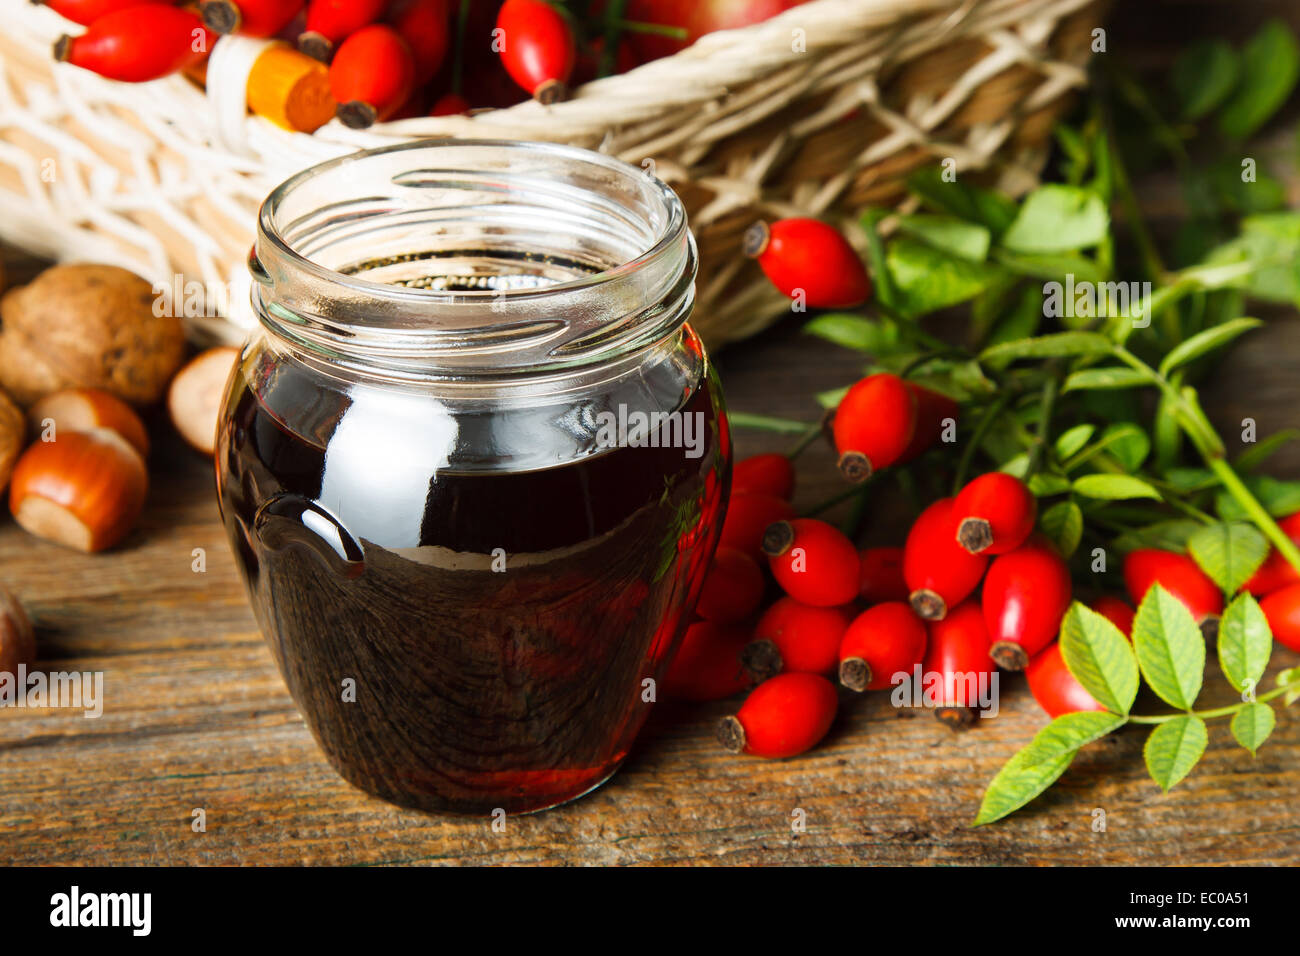 The thick syrup made from rose hips - Stock Image